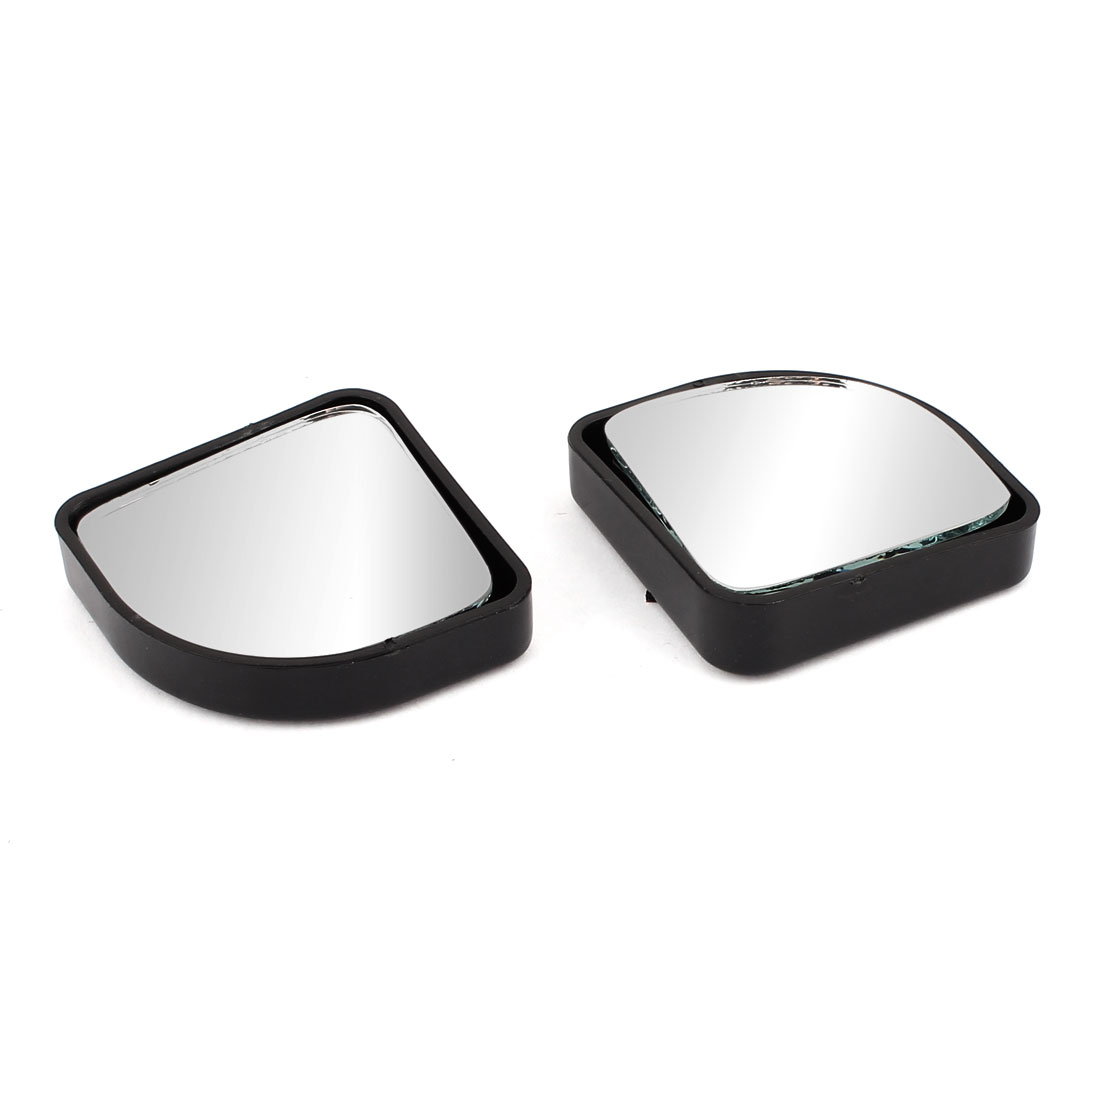 2pcs 360 Degree Rotatable Adjustable Adhesive Base Car Vehicle Blind Spot Rearview Mirror